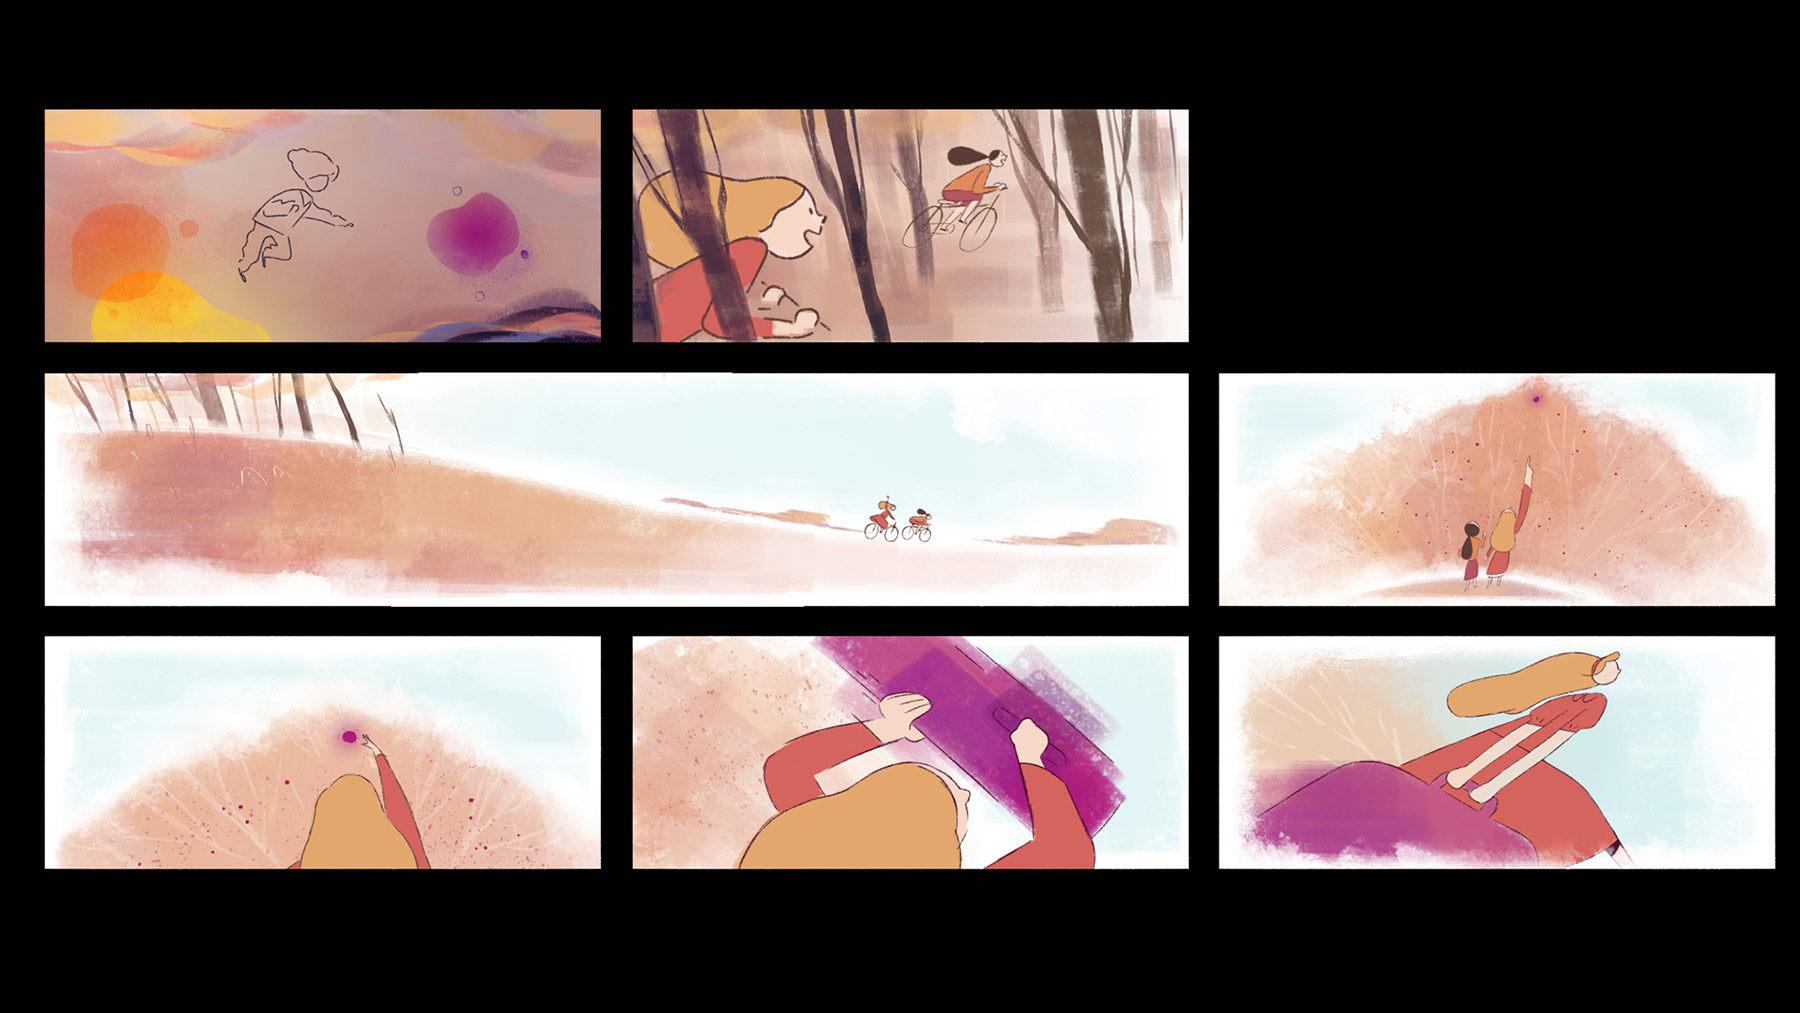 Concept artwork showing the memories of the main character.